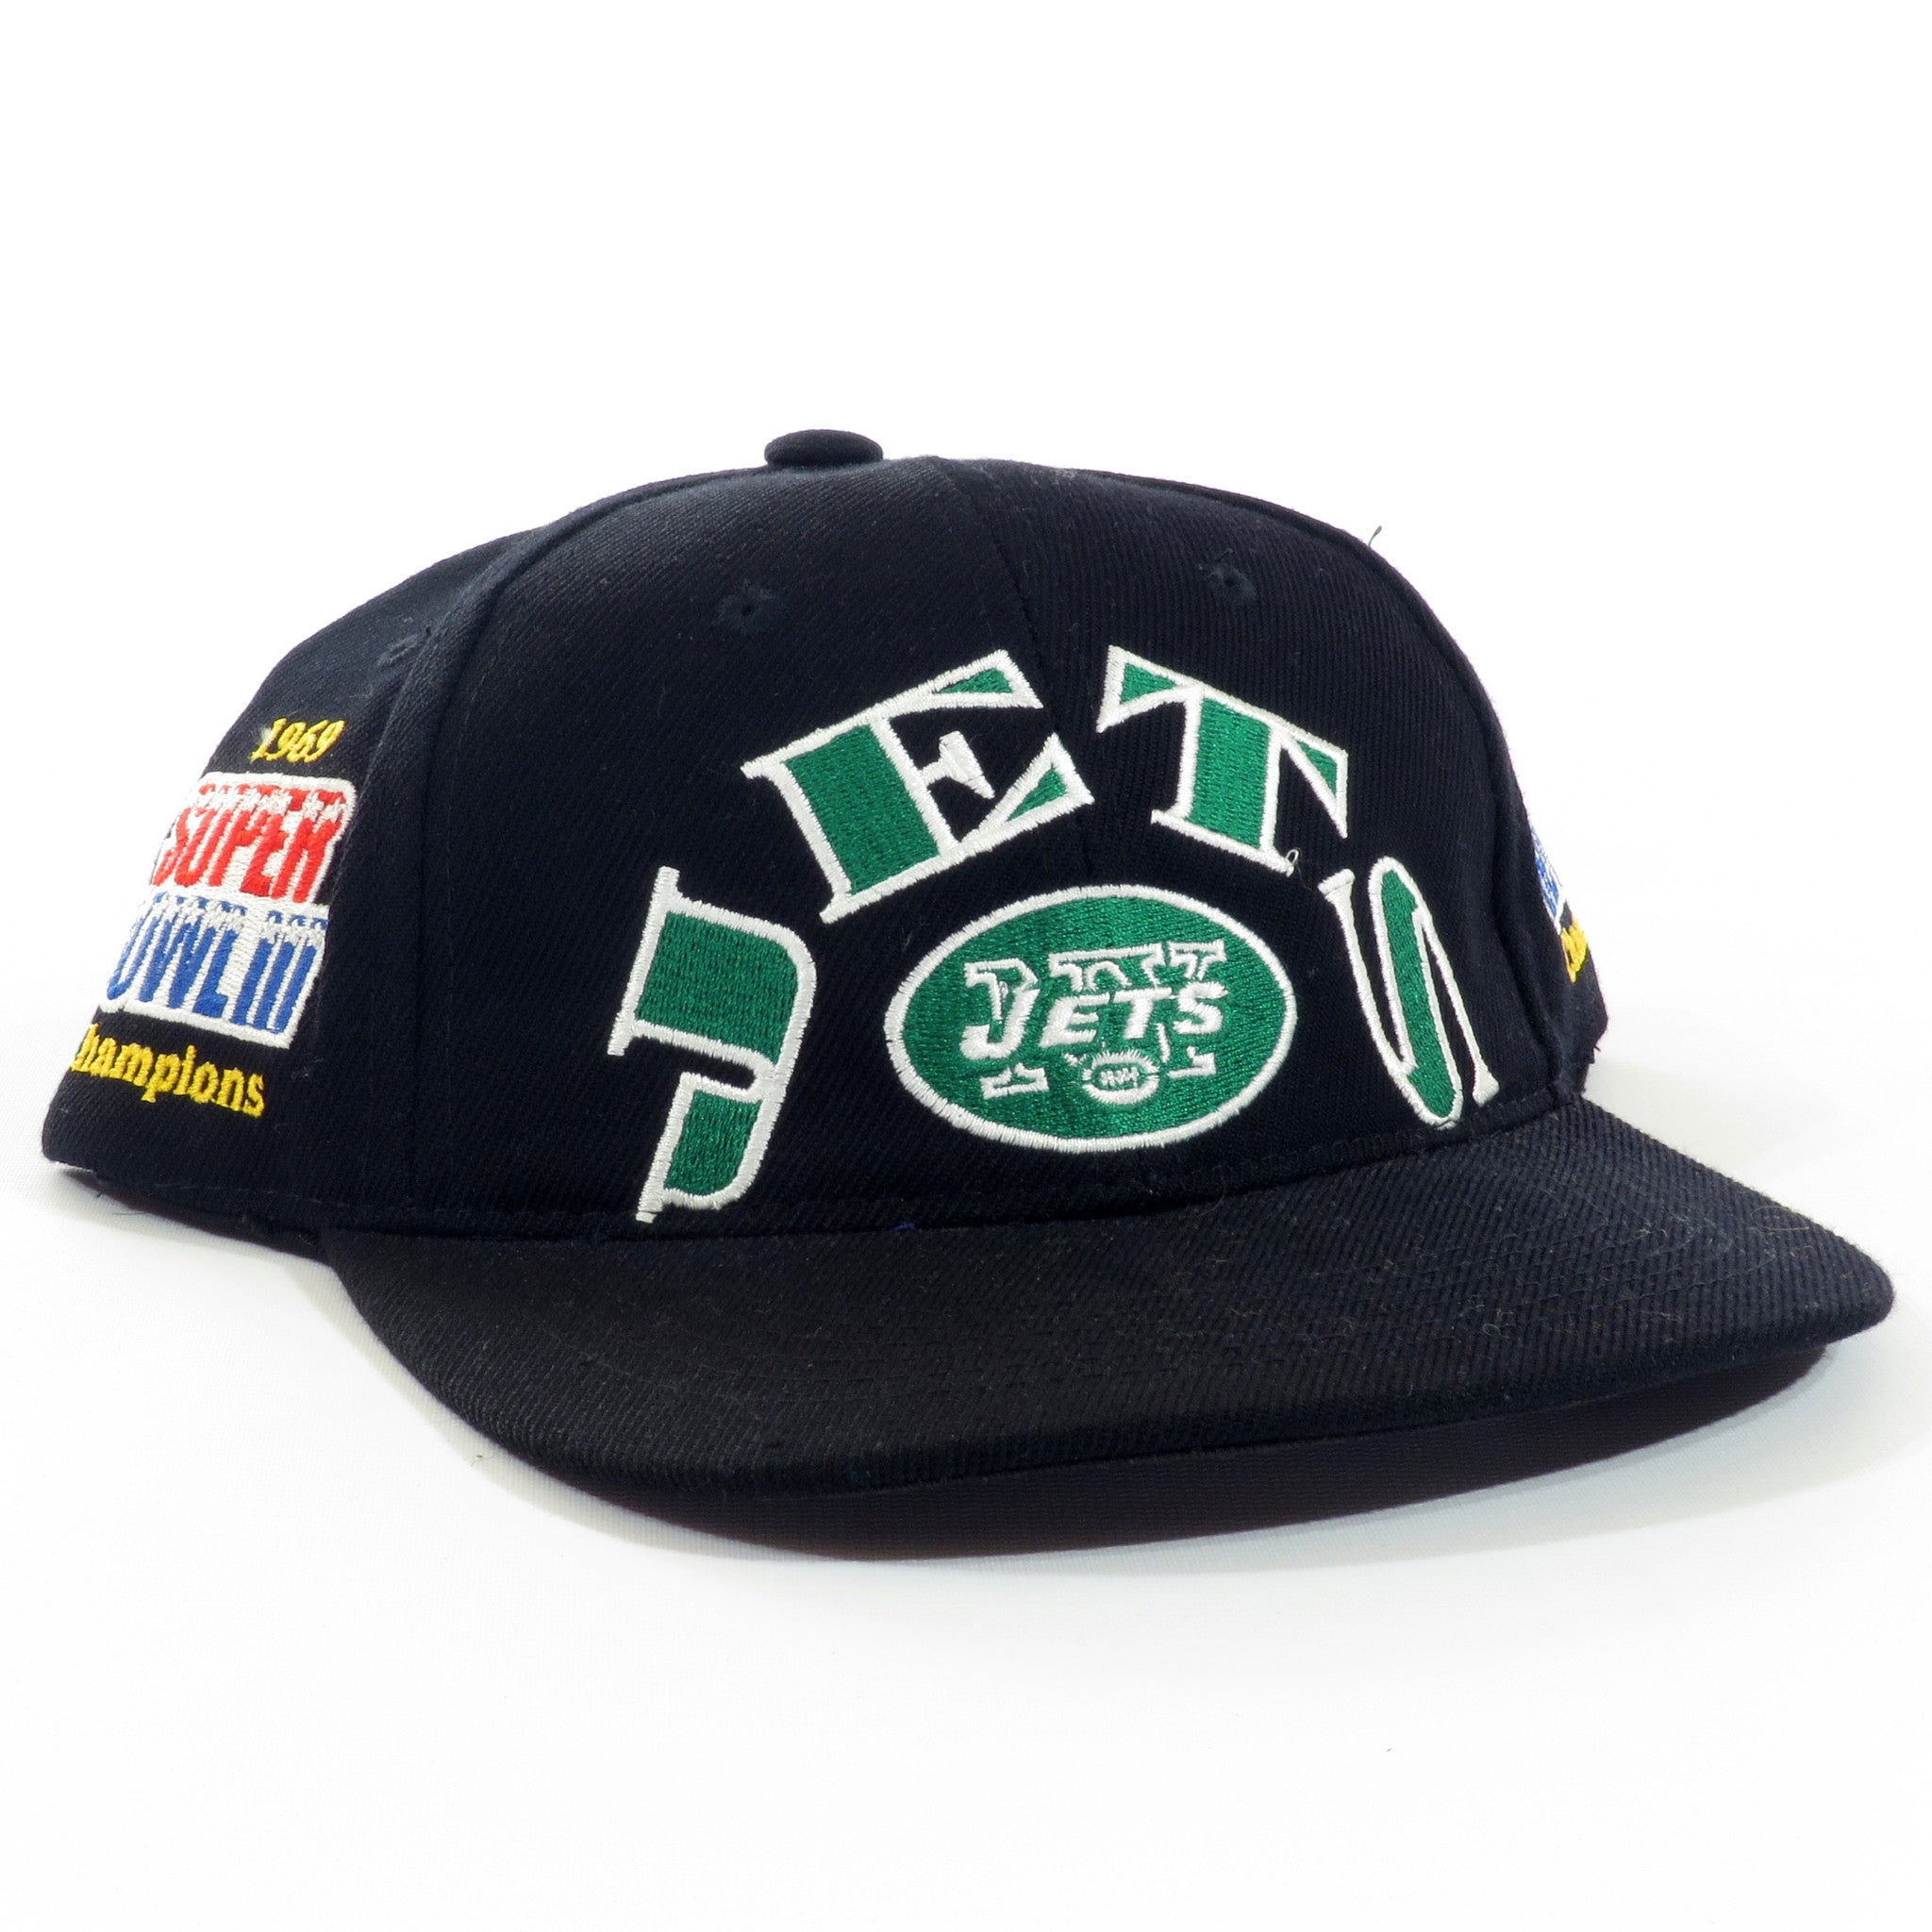 New York Jets Super Bowl Snapback Hat